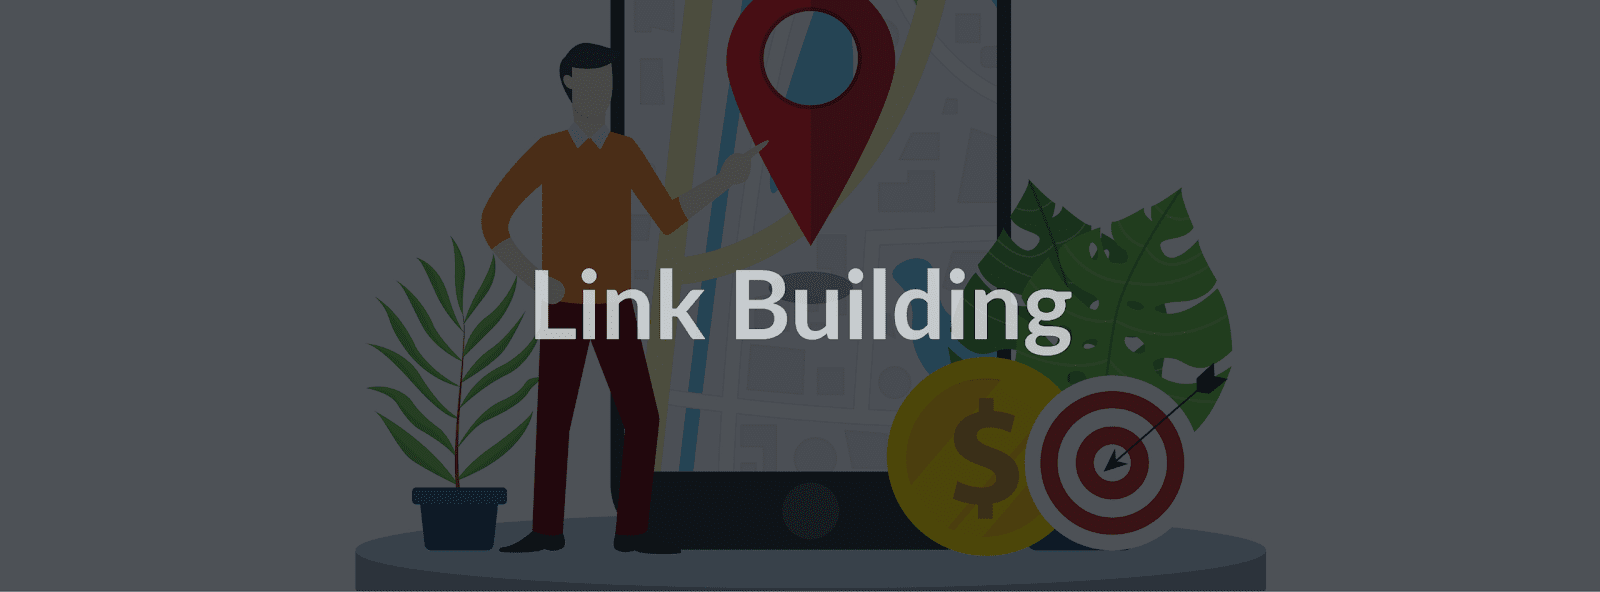 Local SEO Tips for Link Building